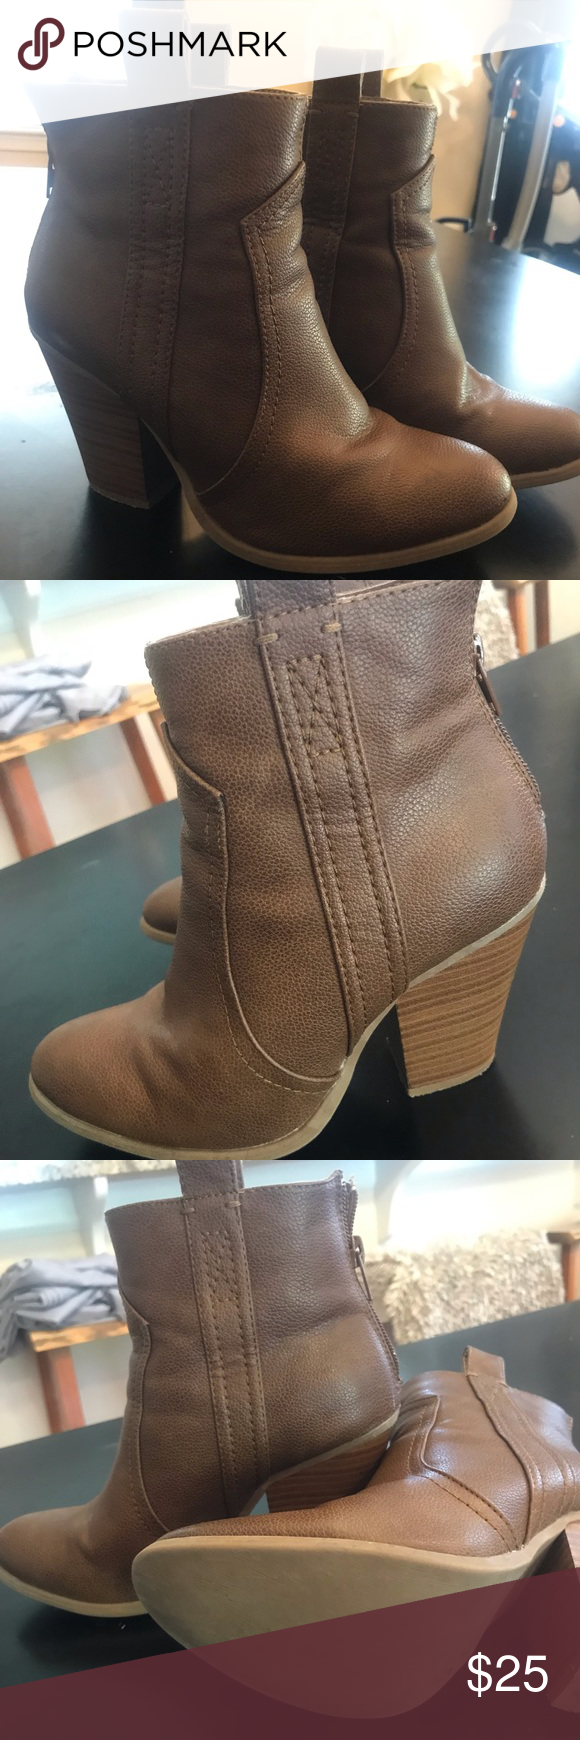 Booties Just Fab booties  Worn three times.  Cute with skinny jeans or dress/shorts! JustFab Shoes Ankle Boots & Booties #skinnyjeansandankleboots Booties Just Fab booties  Worn three times.  Cute with skinny jeans or dress/shorts! JustFab Shoes Ankle Boots & Booties #skinnyjeansandankleboots